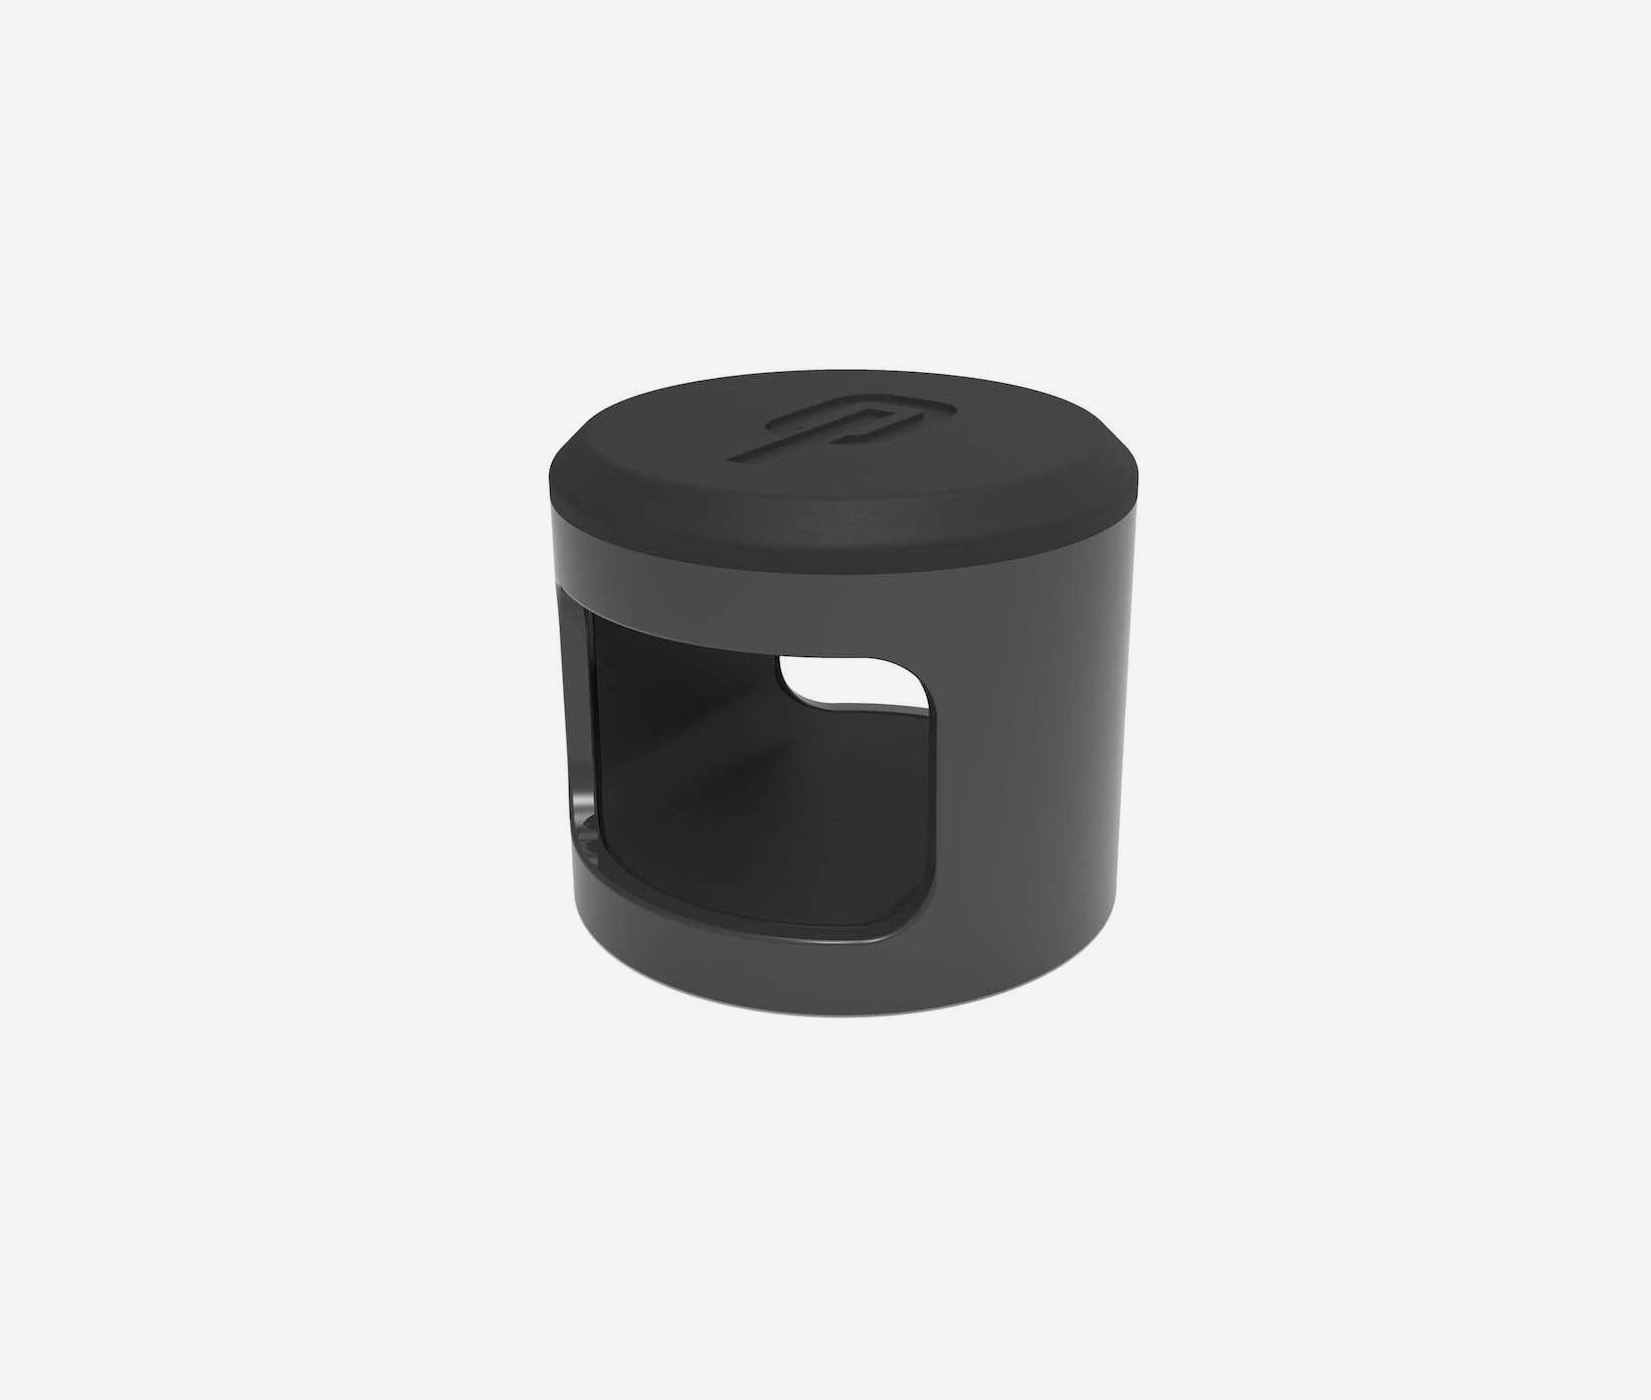 Hiplok ANKR lock mount home secure and store